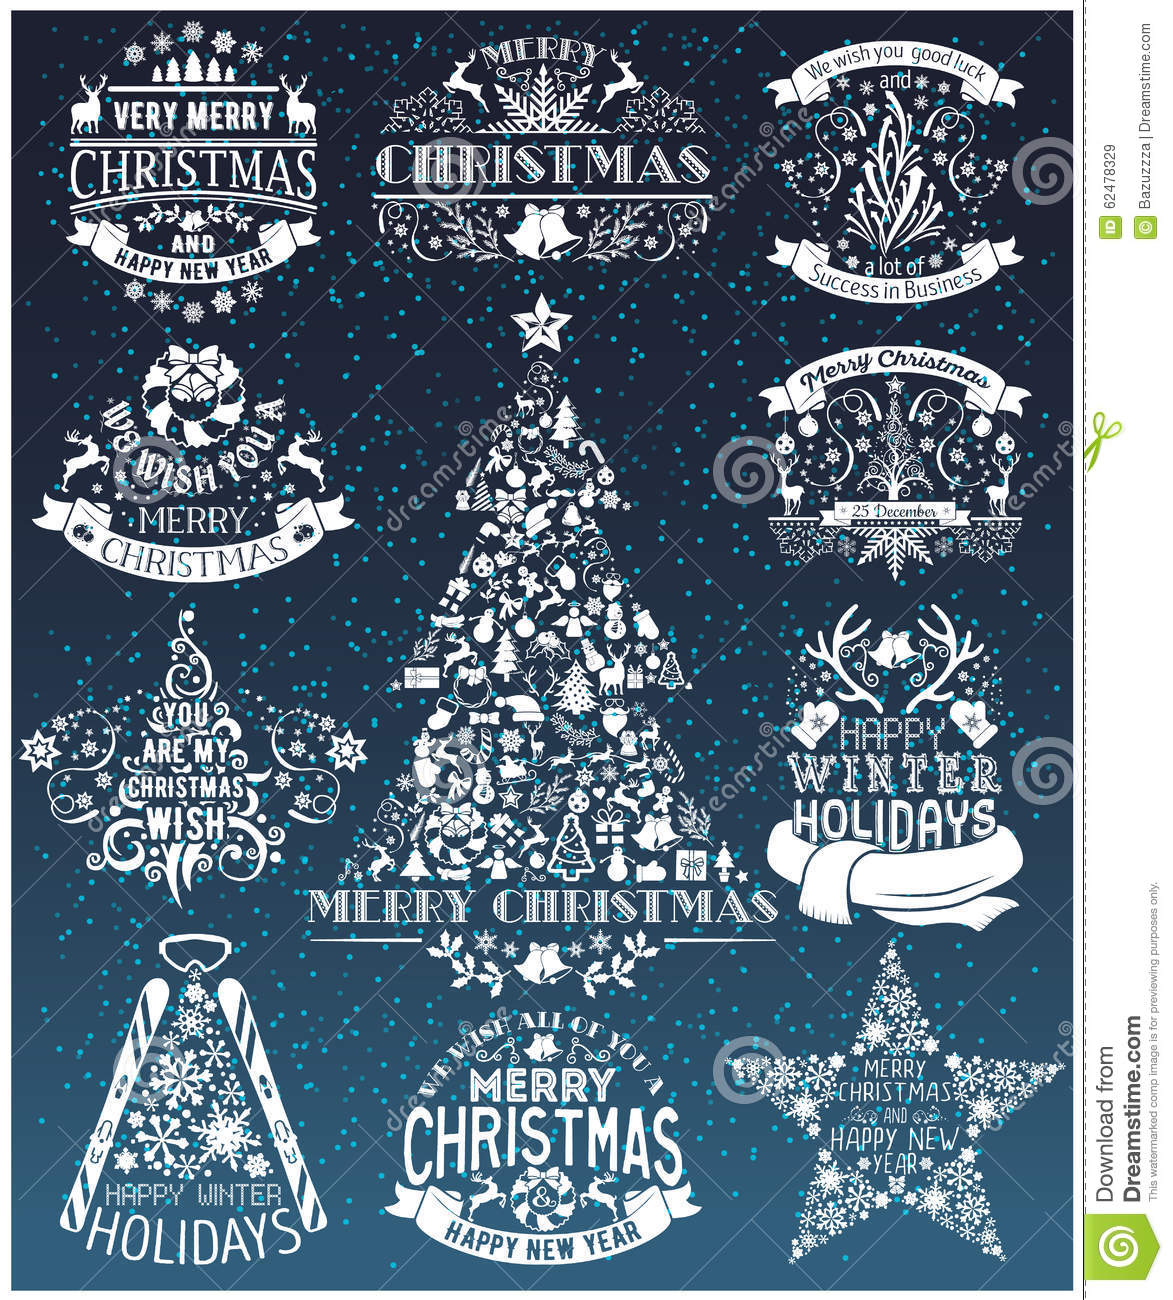 Vintage Merry Christmas And Happy New Year collection of labels